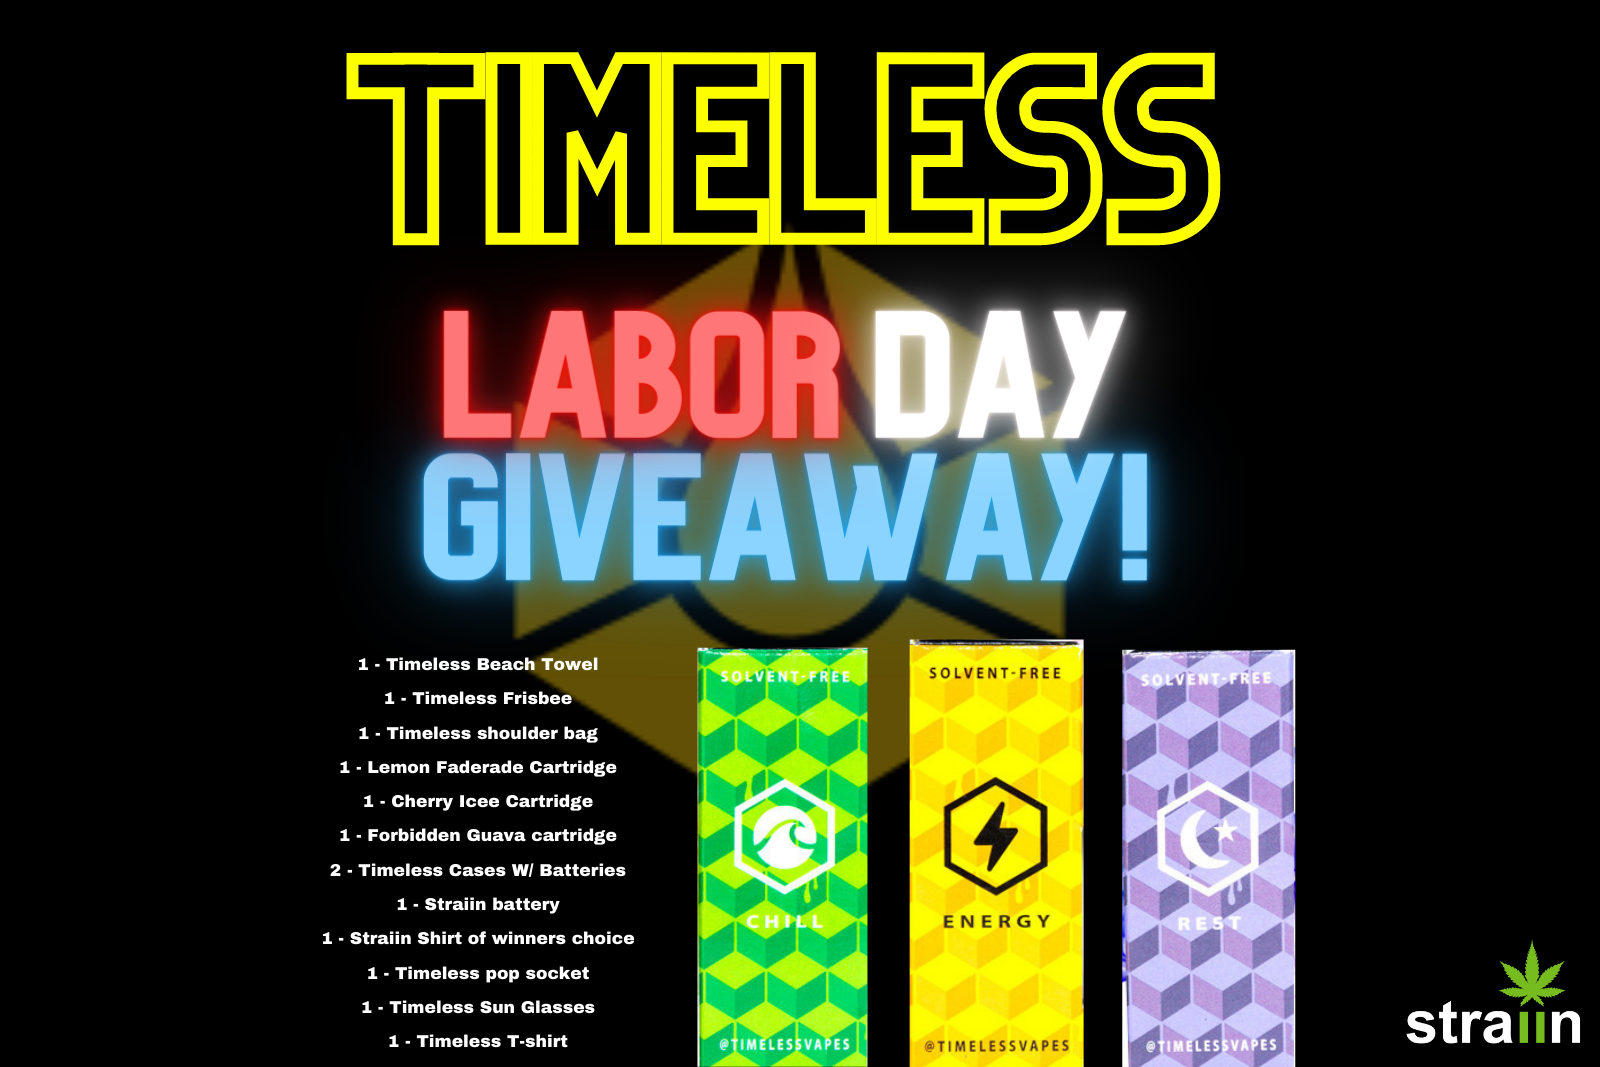 timeless labor day giveaway